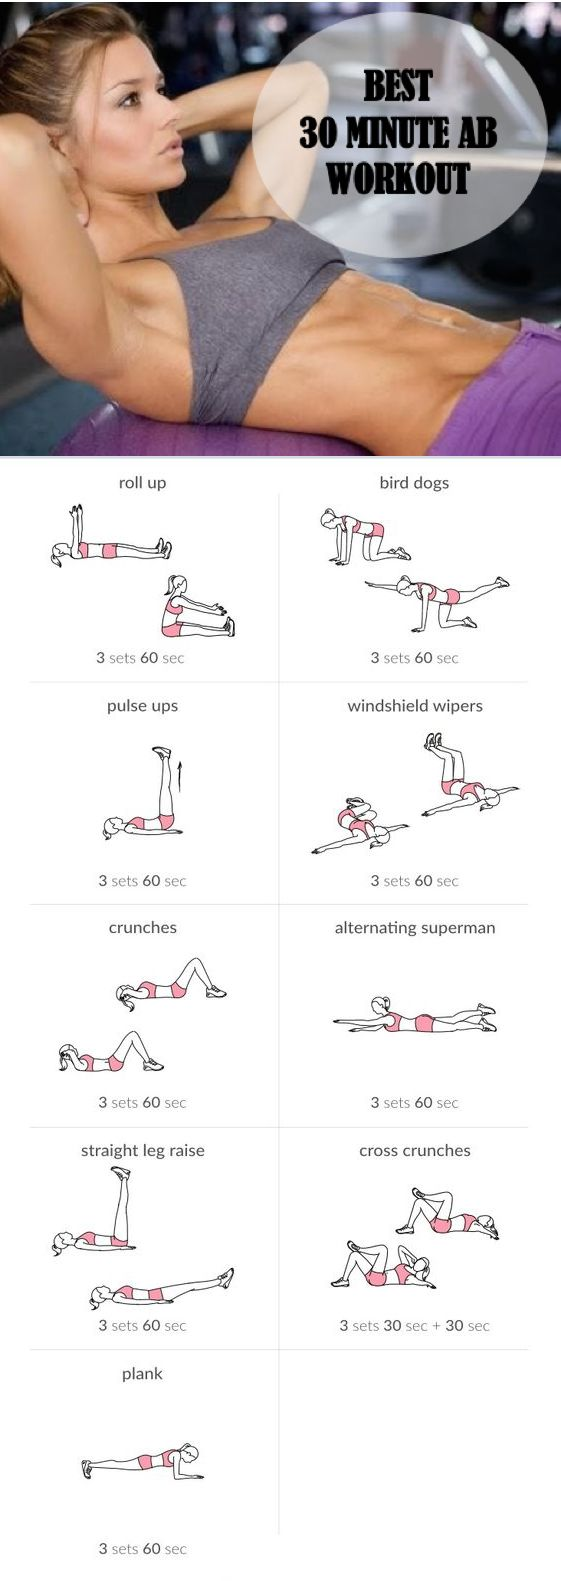 Great 30 minute ab workout to do to get ready for bathing suit season. Best part of this workout is that you can do it at home with no equipment!